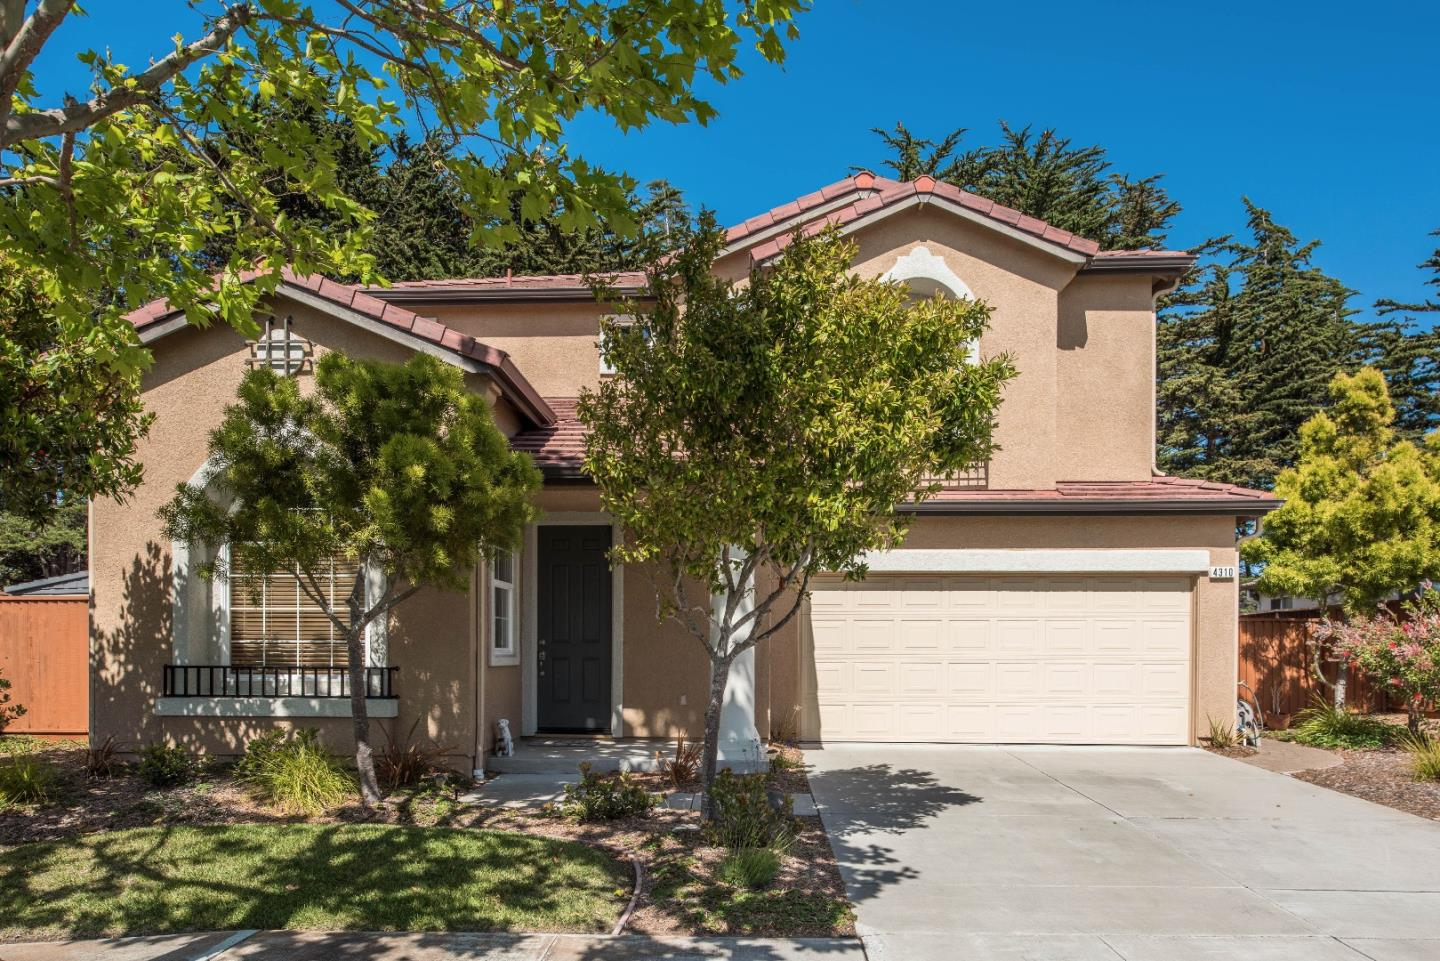 Single Family Home for Sale at 4310 Peninsula Point Drive Seaside, California 93955 United States